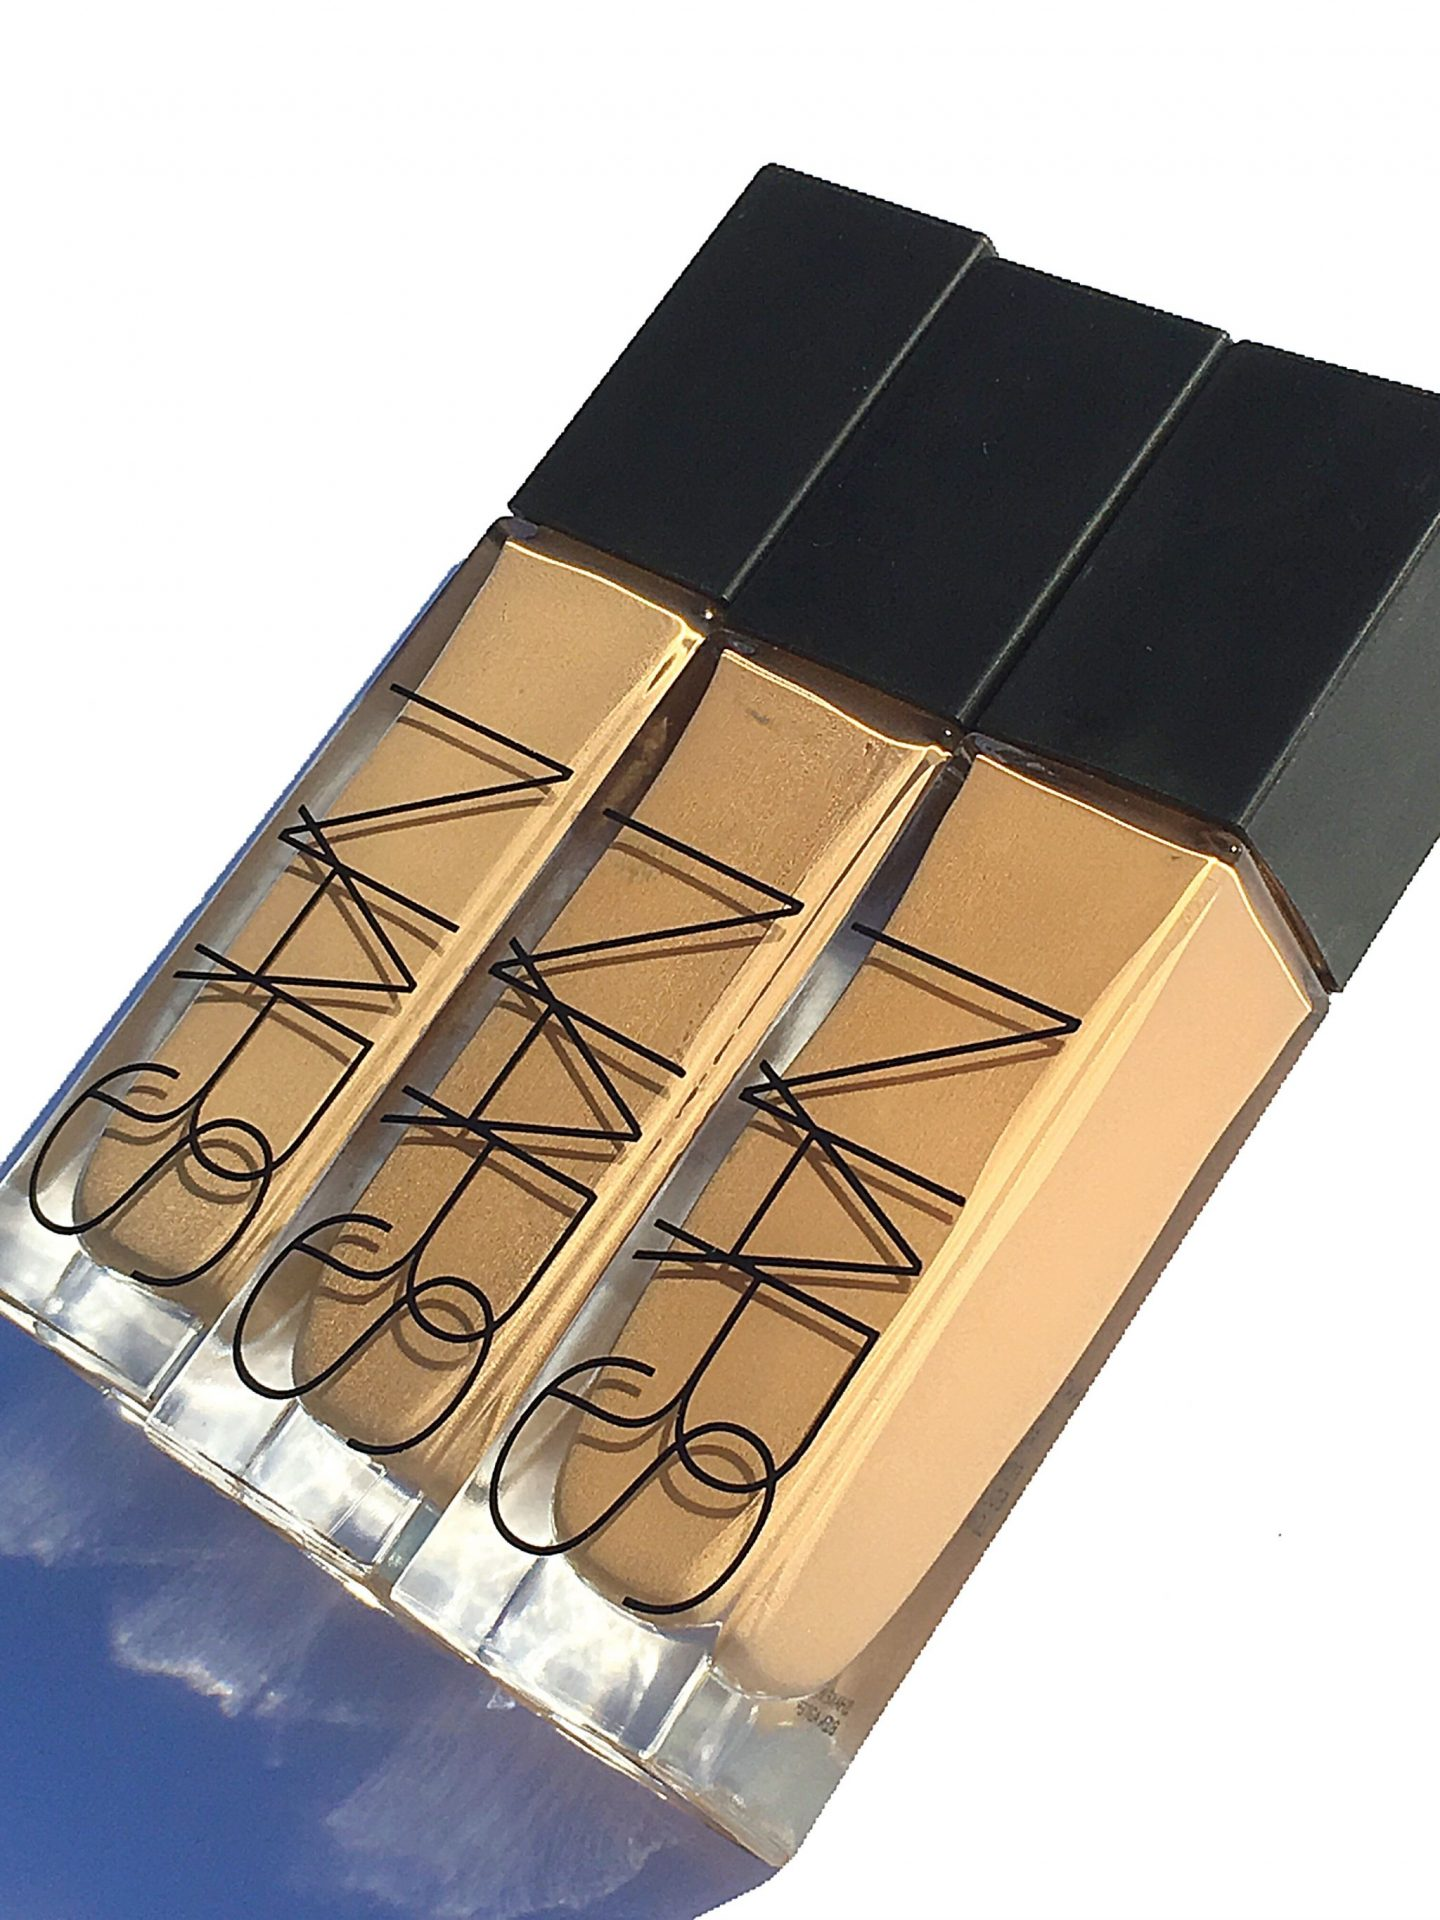 NARS Natural Radiant Long Wear Foundation Review and swatches all shades | www.calibeaute.com